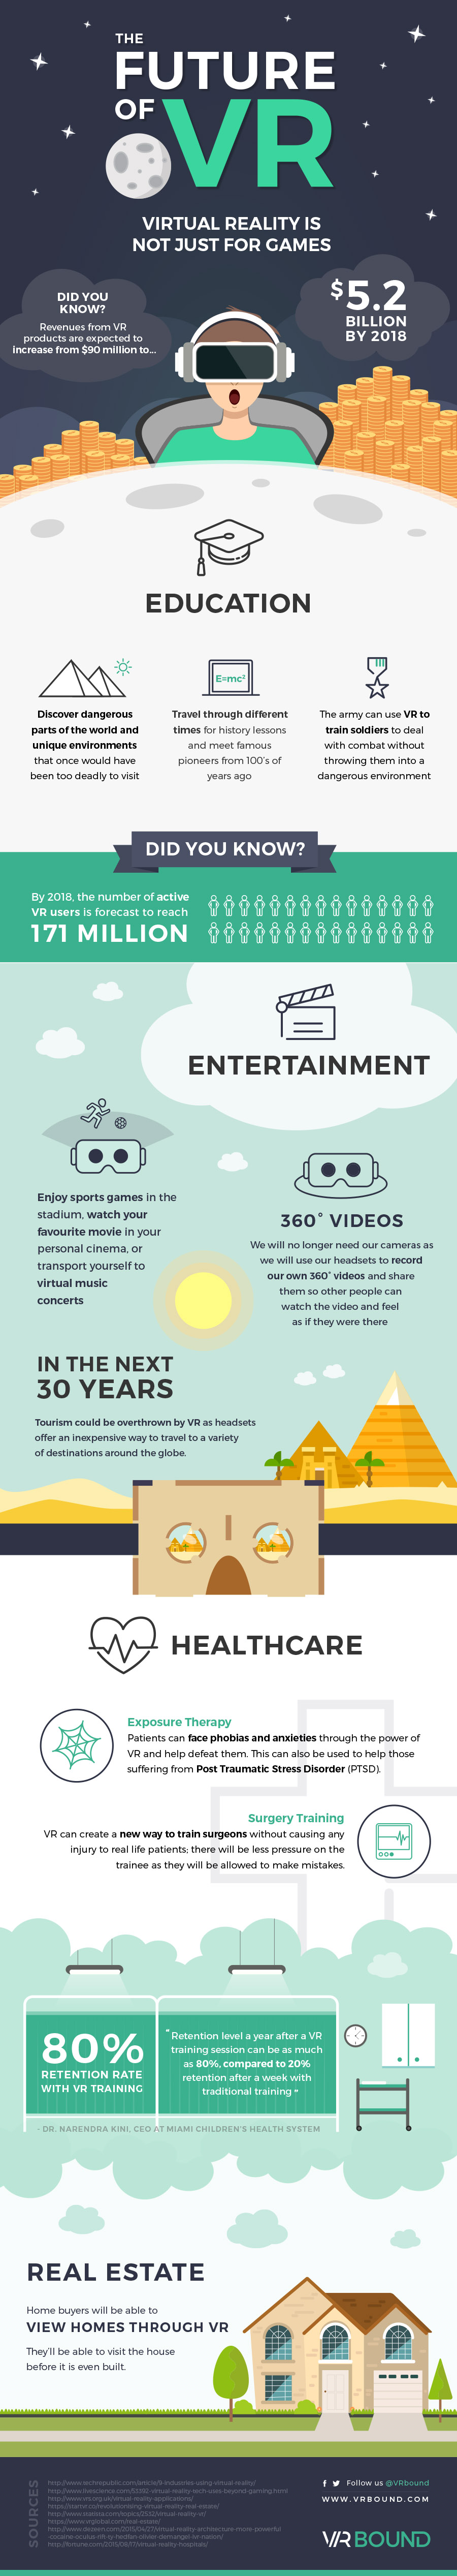 Infographic: The Future of VR | VR Bound